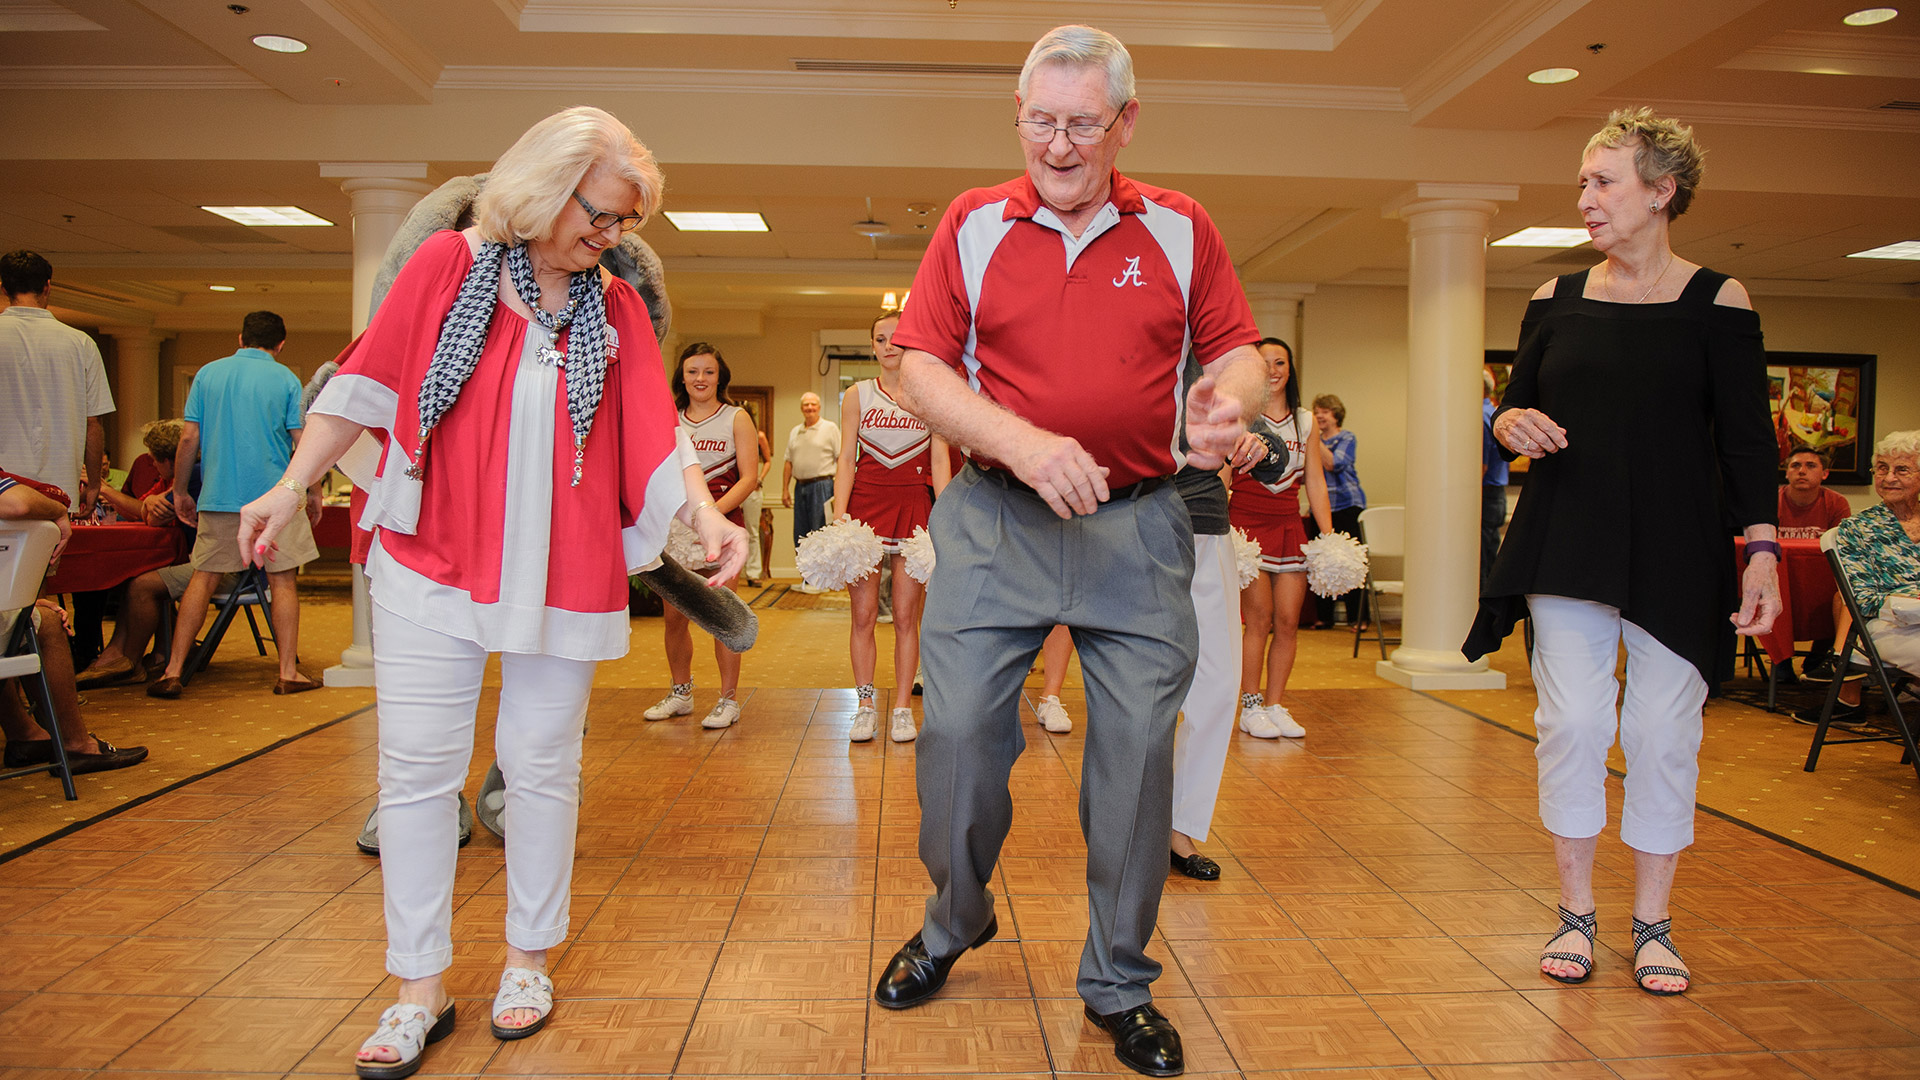 Two female and one male Capstone Village residents dance on a hardwood floor